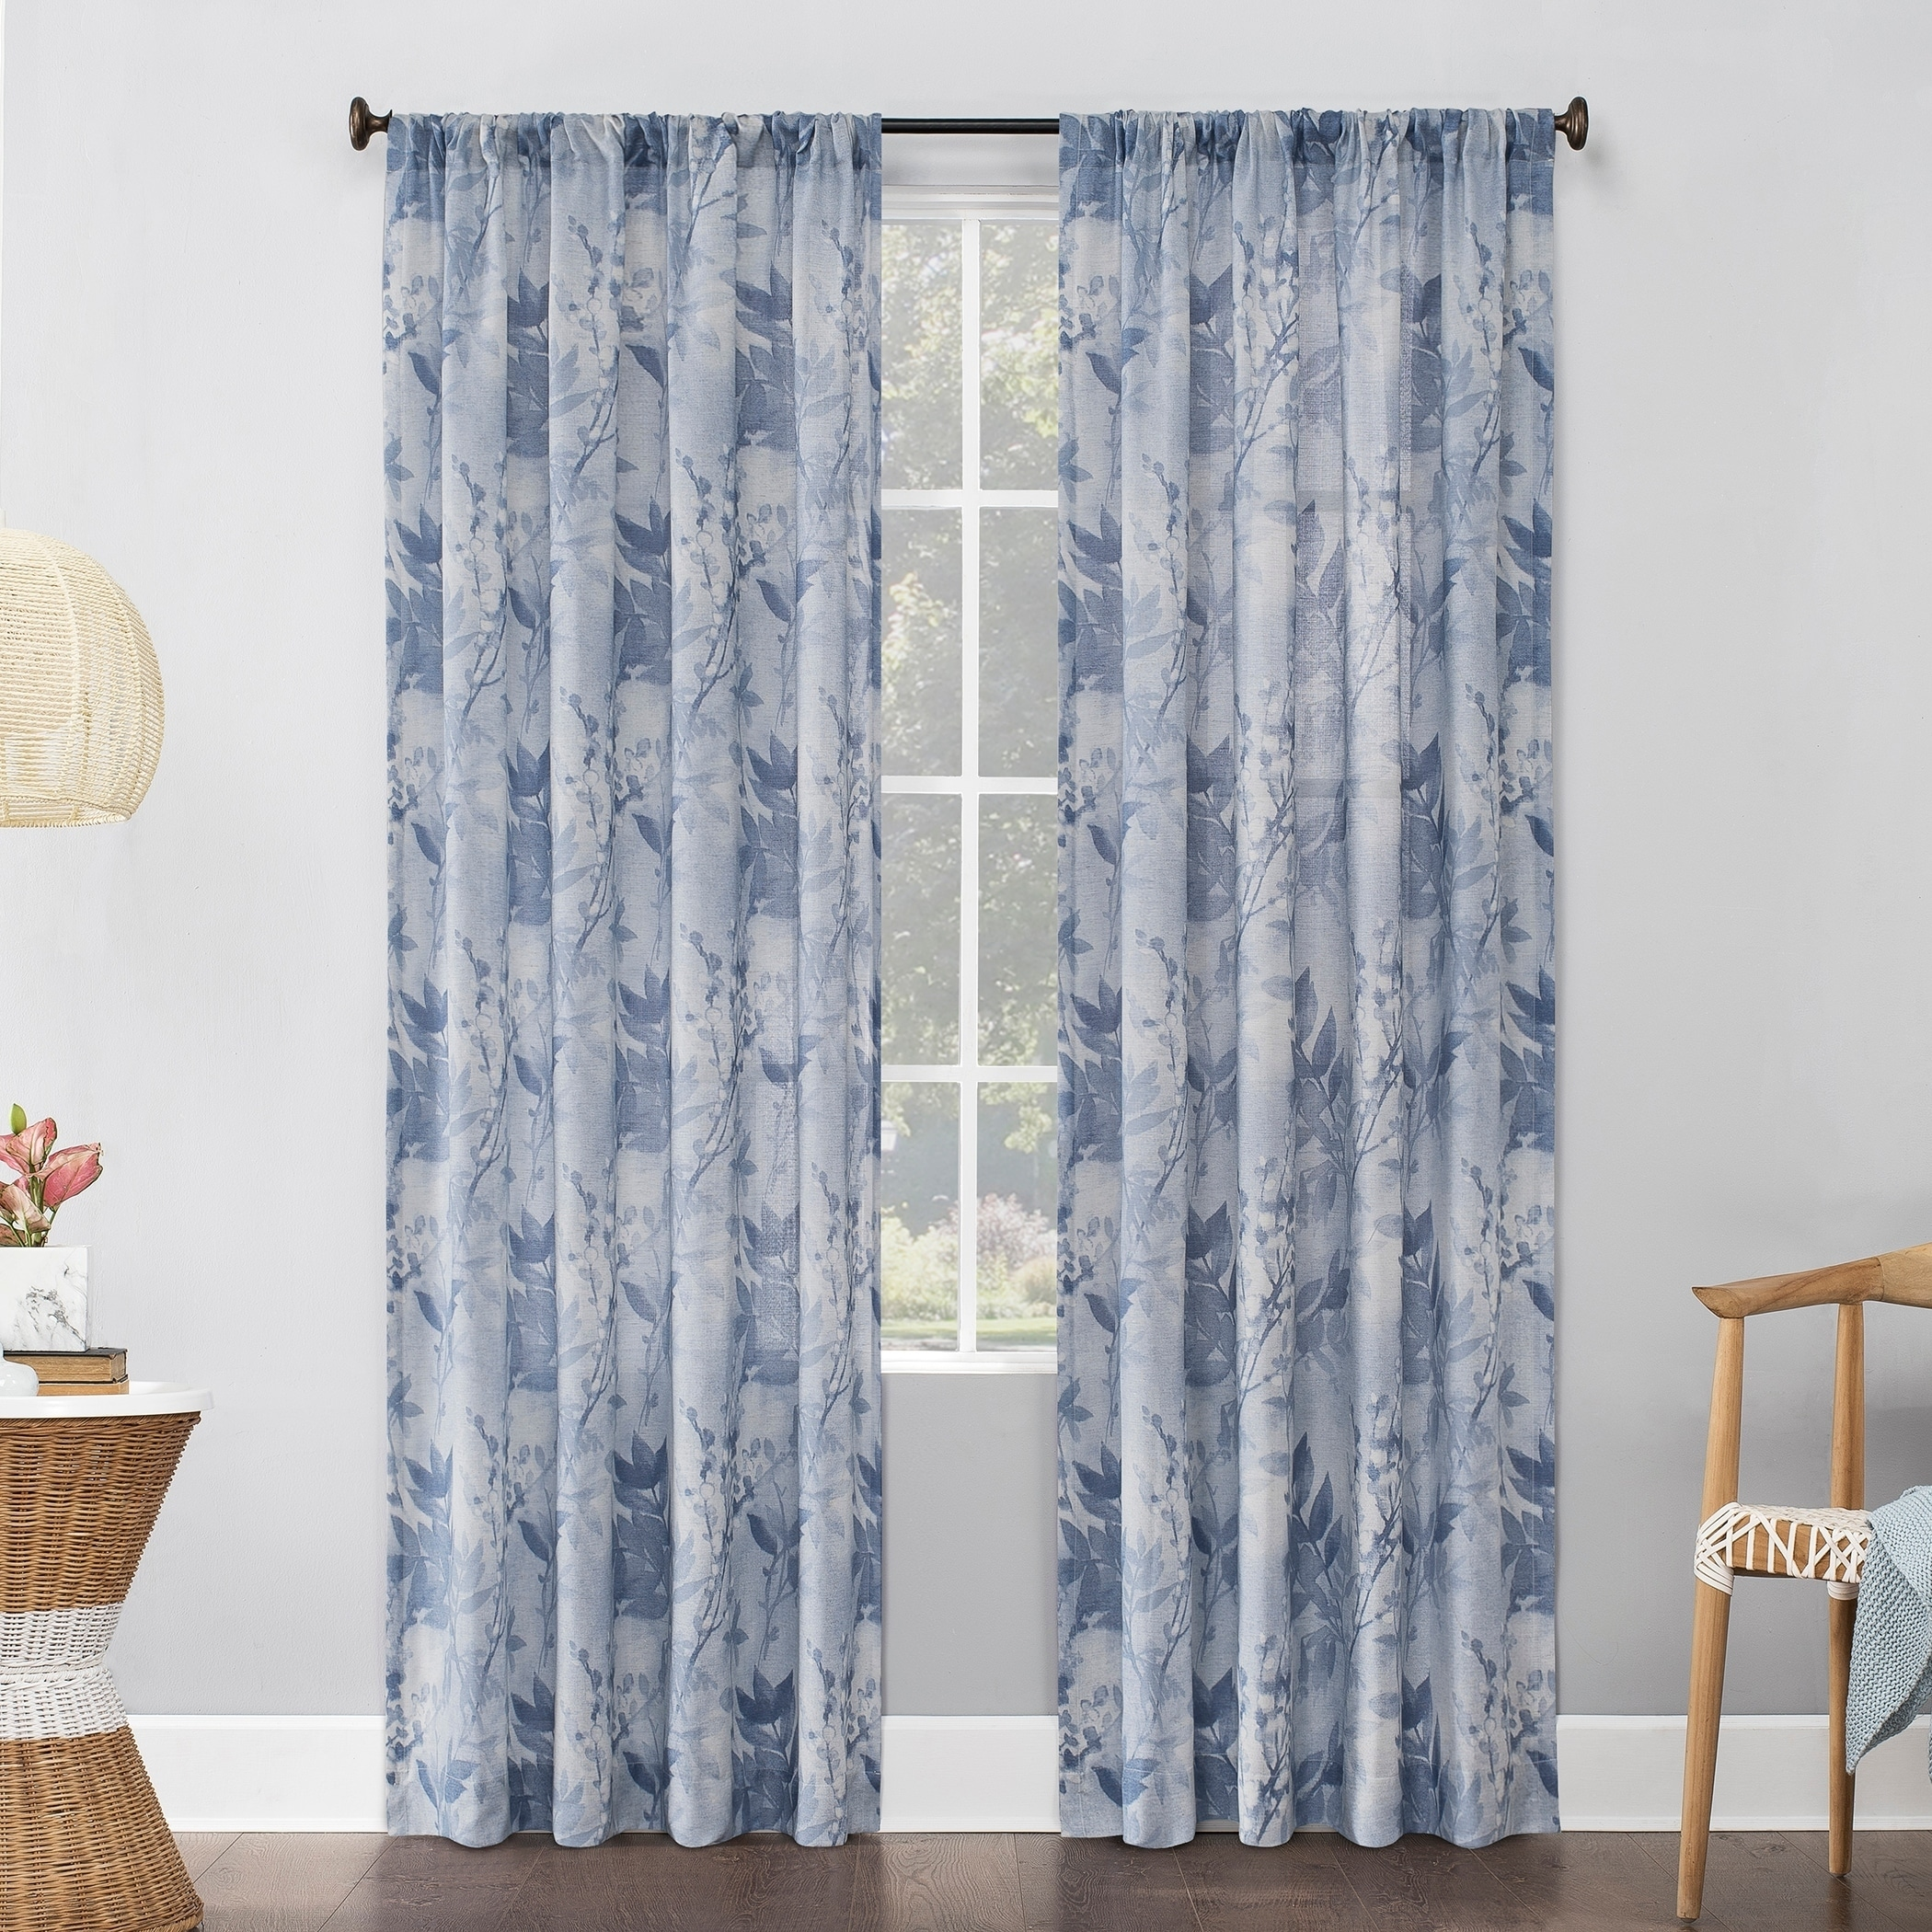 Shop For No 918 Hilary Watercolor Floral Linen Blend Semi Sheer Rod Pocket Curtain Panel Get Free Delivery On Everything At Overstock Your Online Home Decor Outlet Store Get 5 In Rewards With Club O 29861543